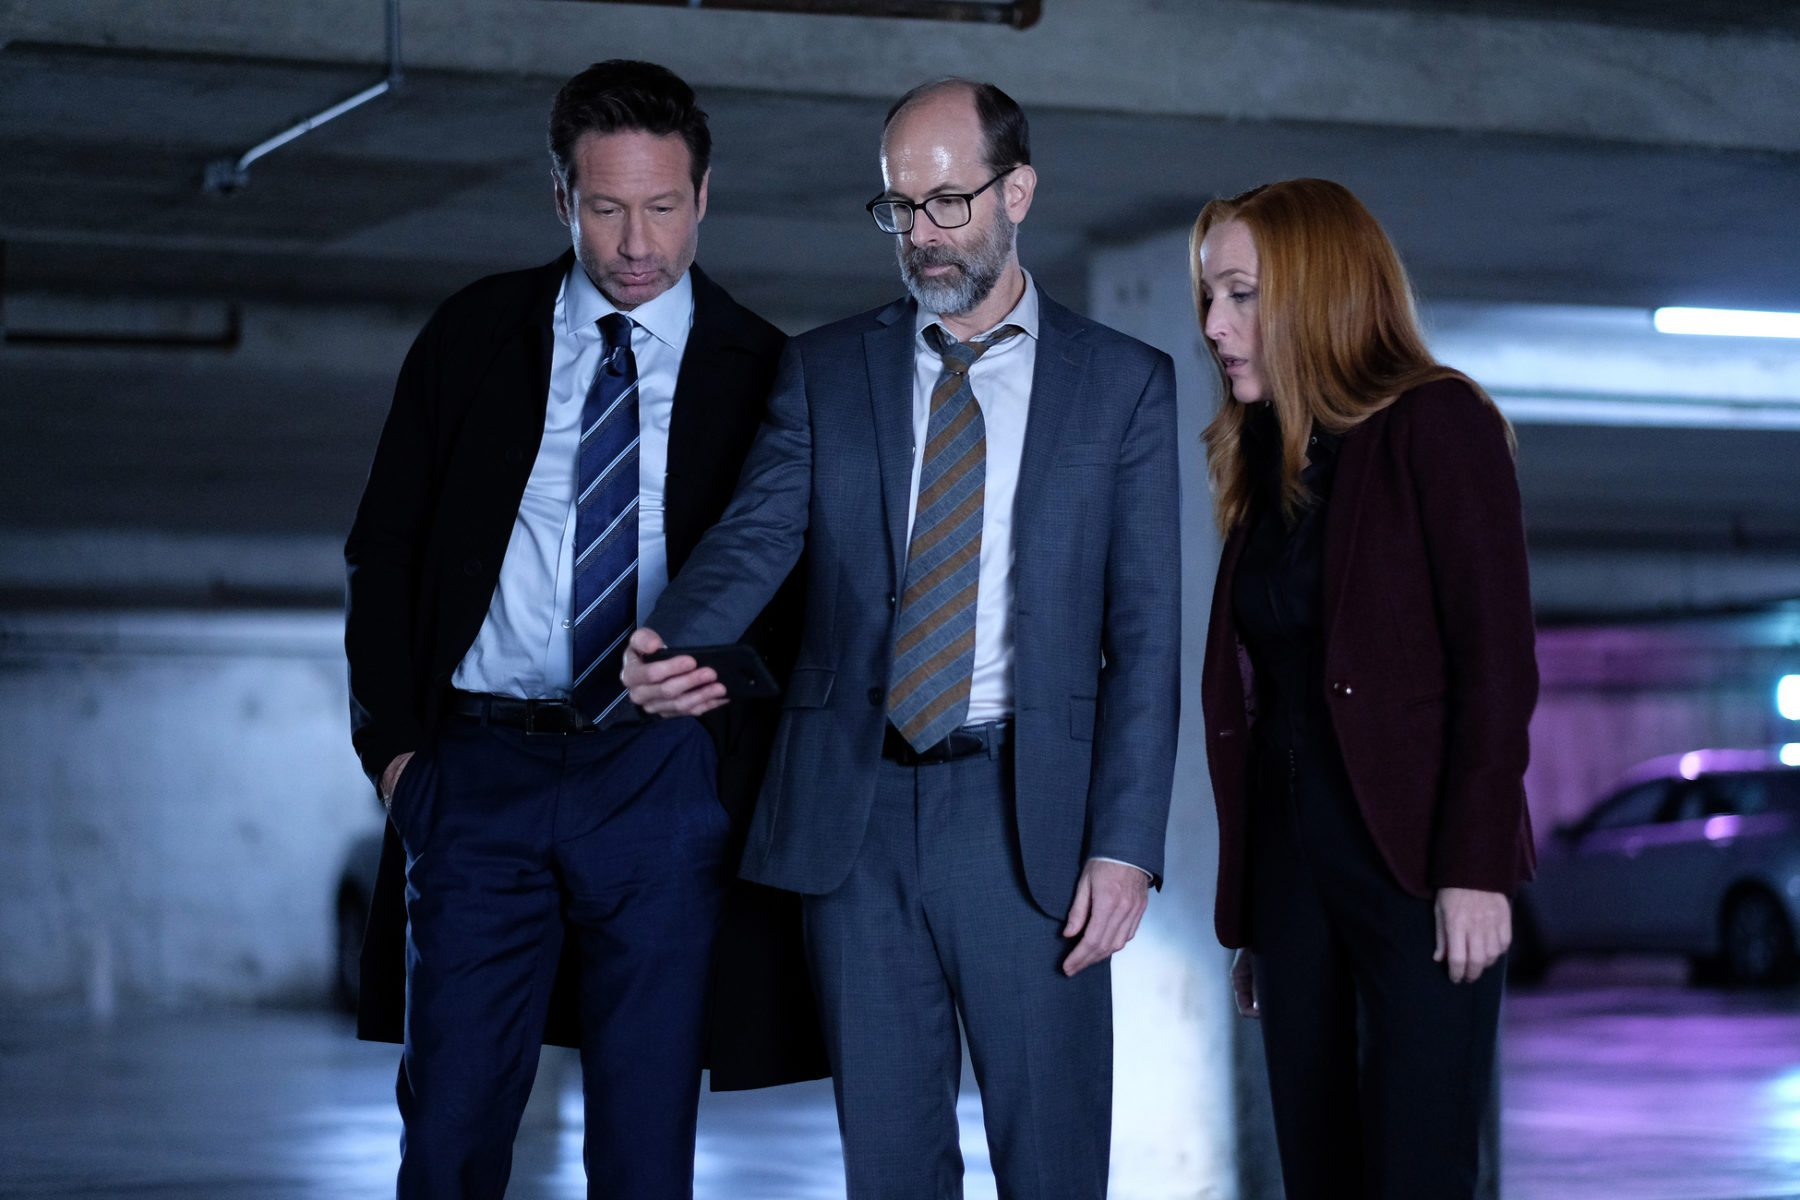 Image de Mulder et Scully et Reggie Something dans l'épisode 4 de la saison 11 de X-Files